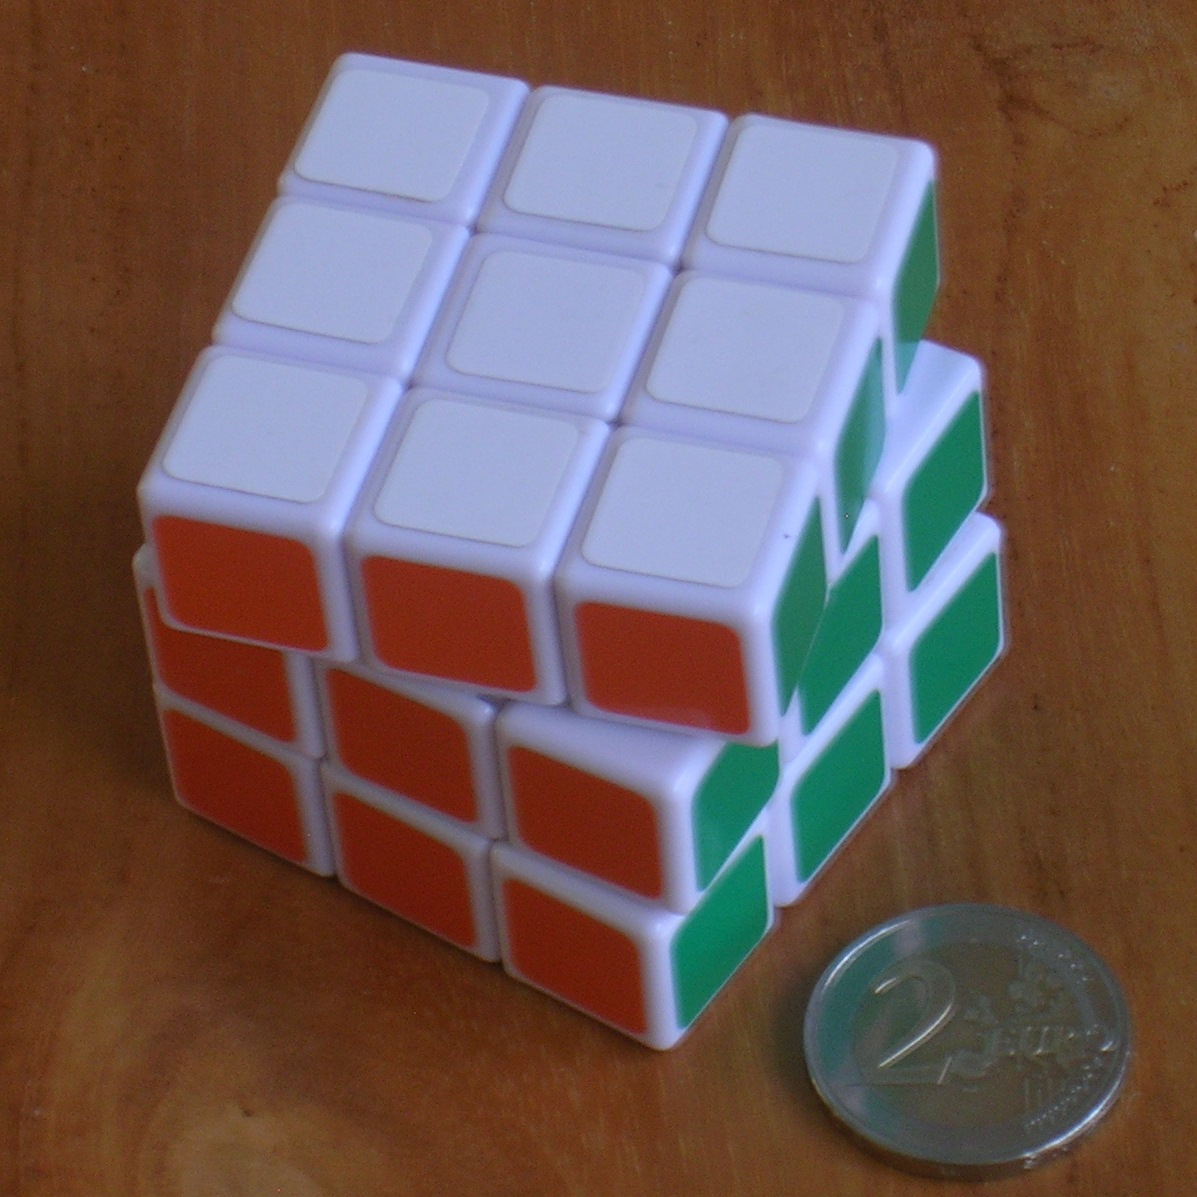 Small Cubes And Limited P: Puzzle Gallery